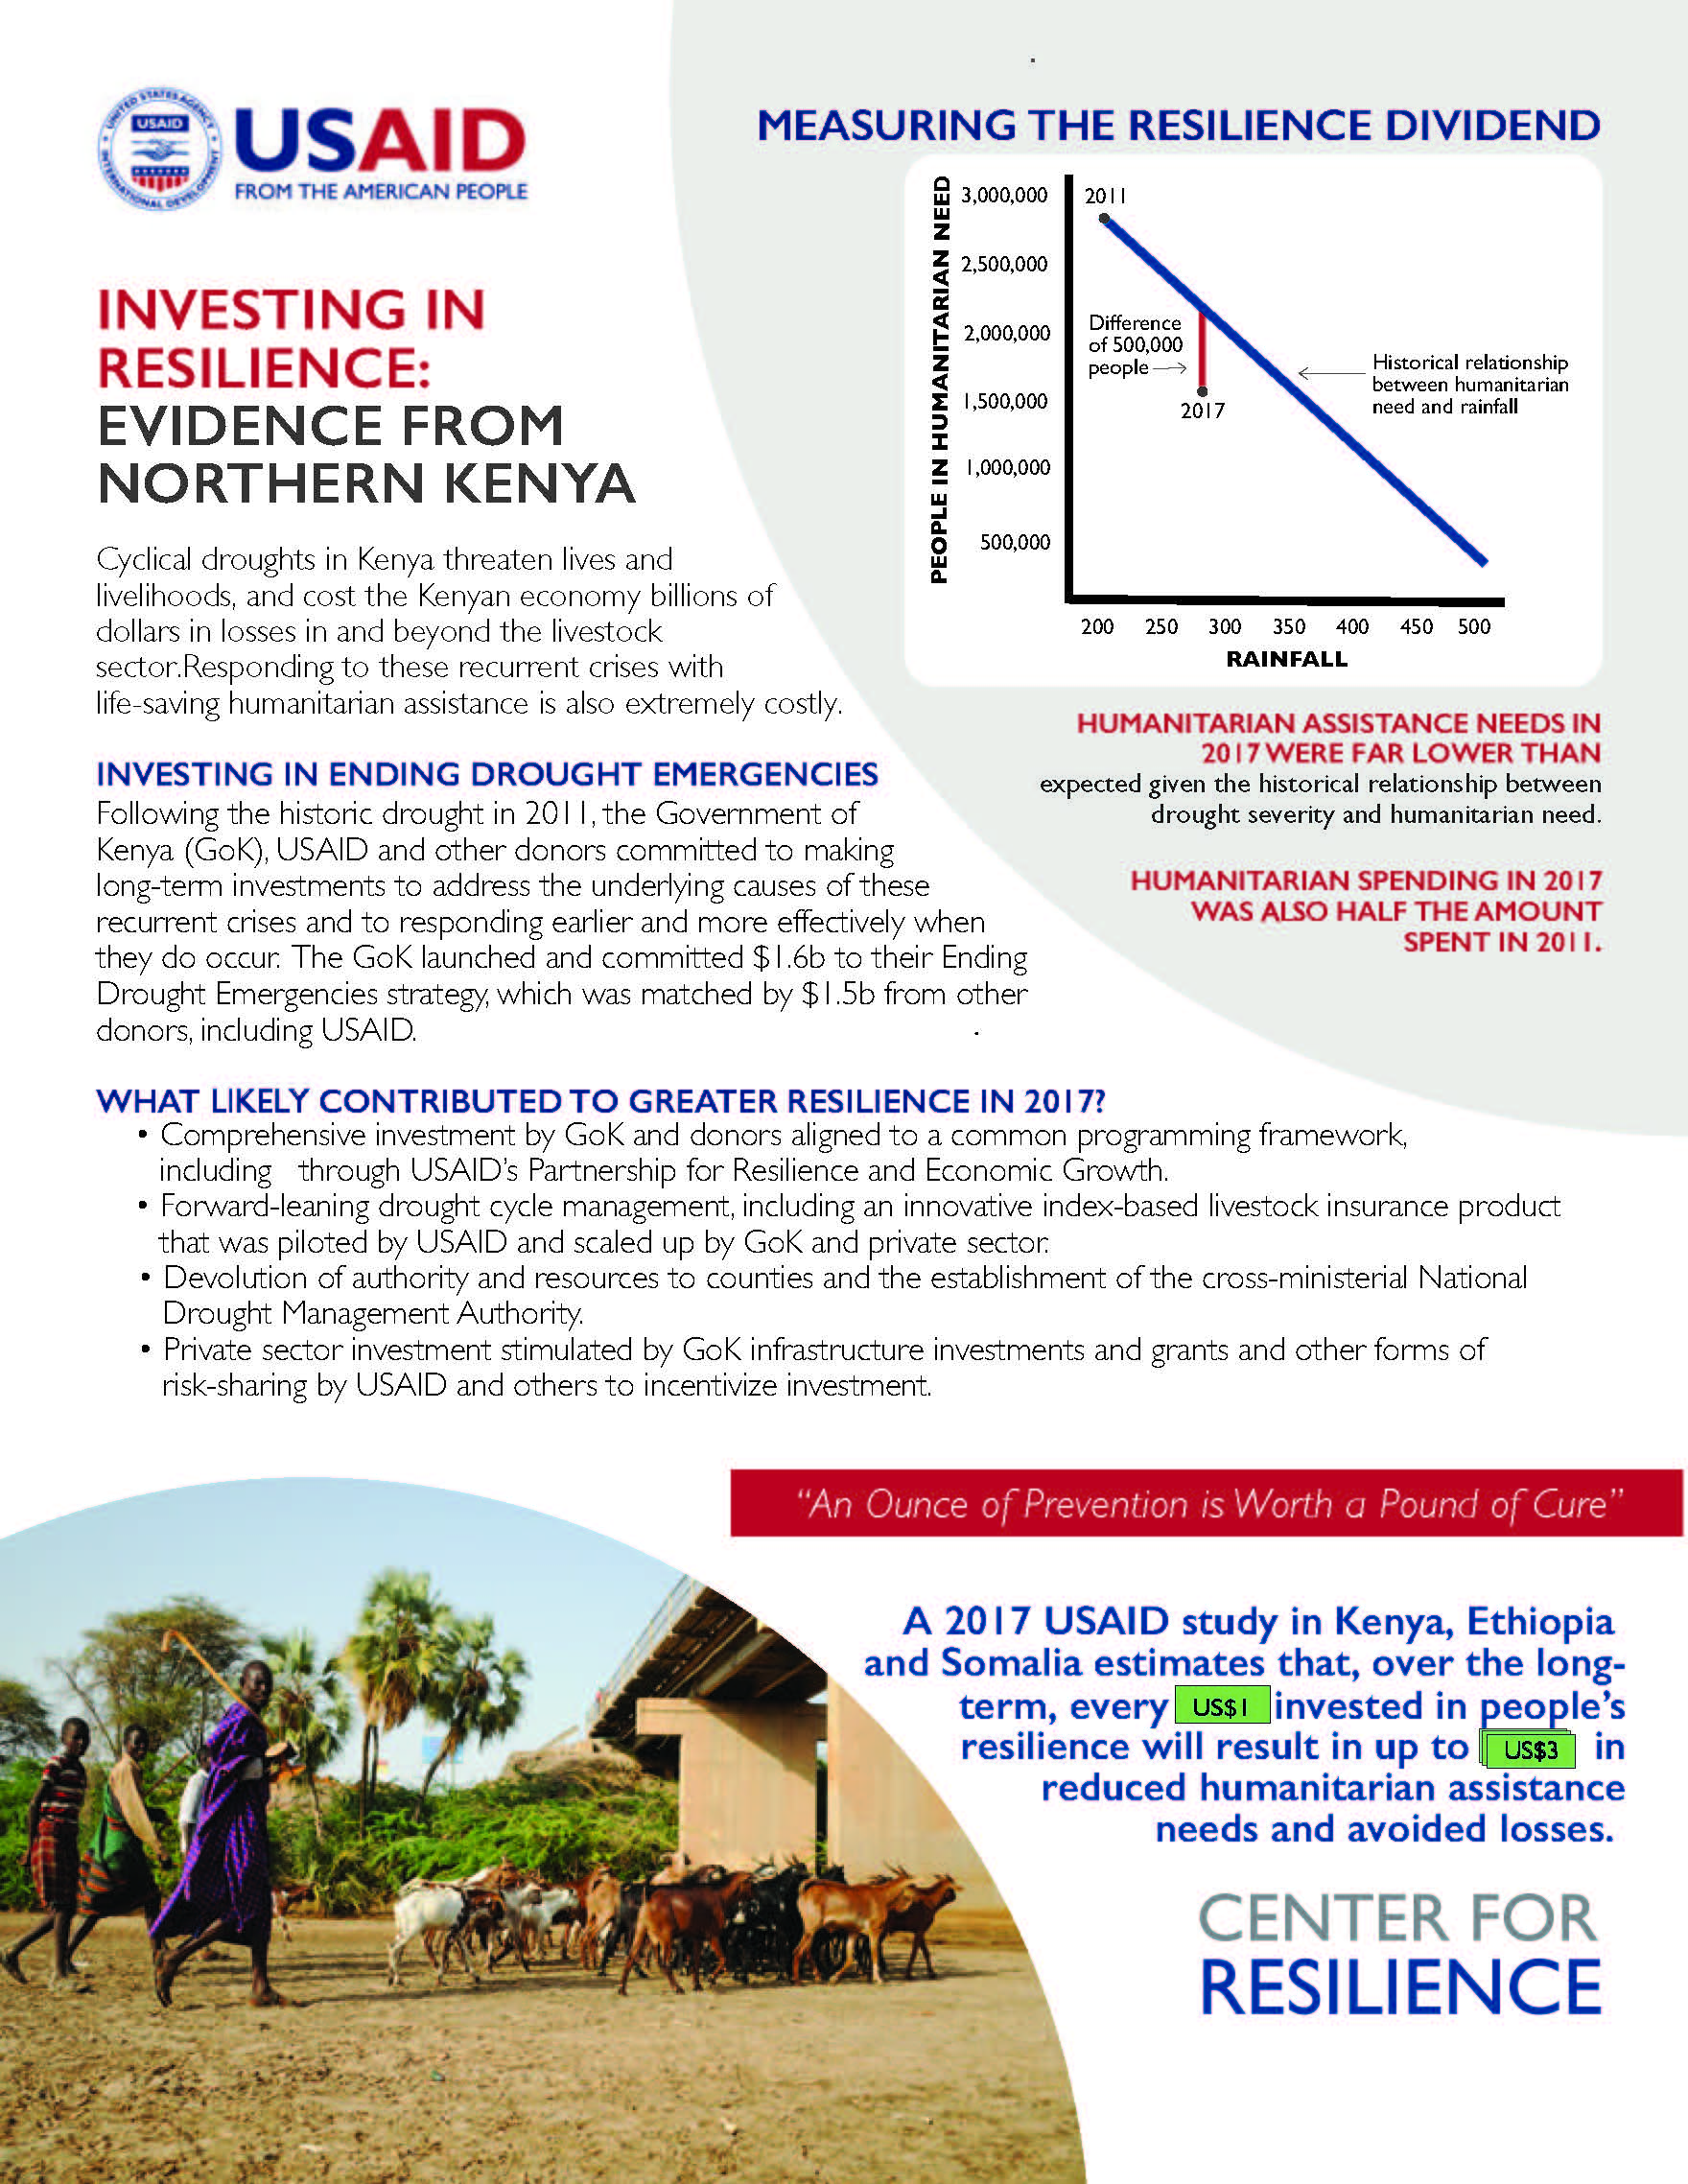 The Investing in Resilience: Evidence from Northern Kenya fact sheet